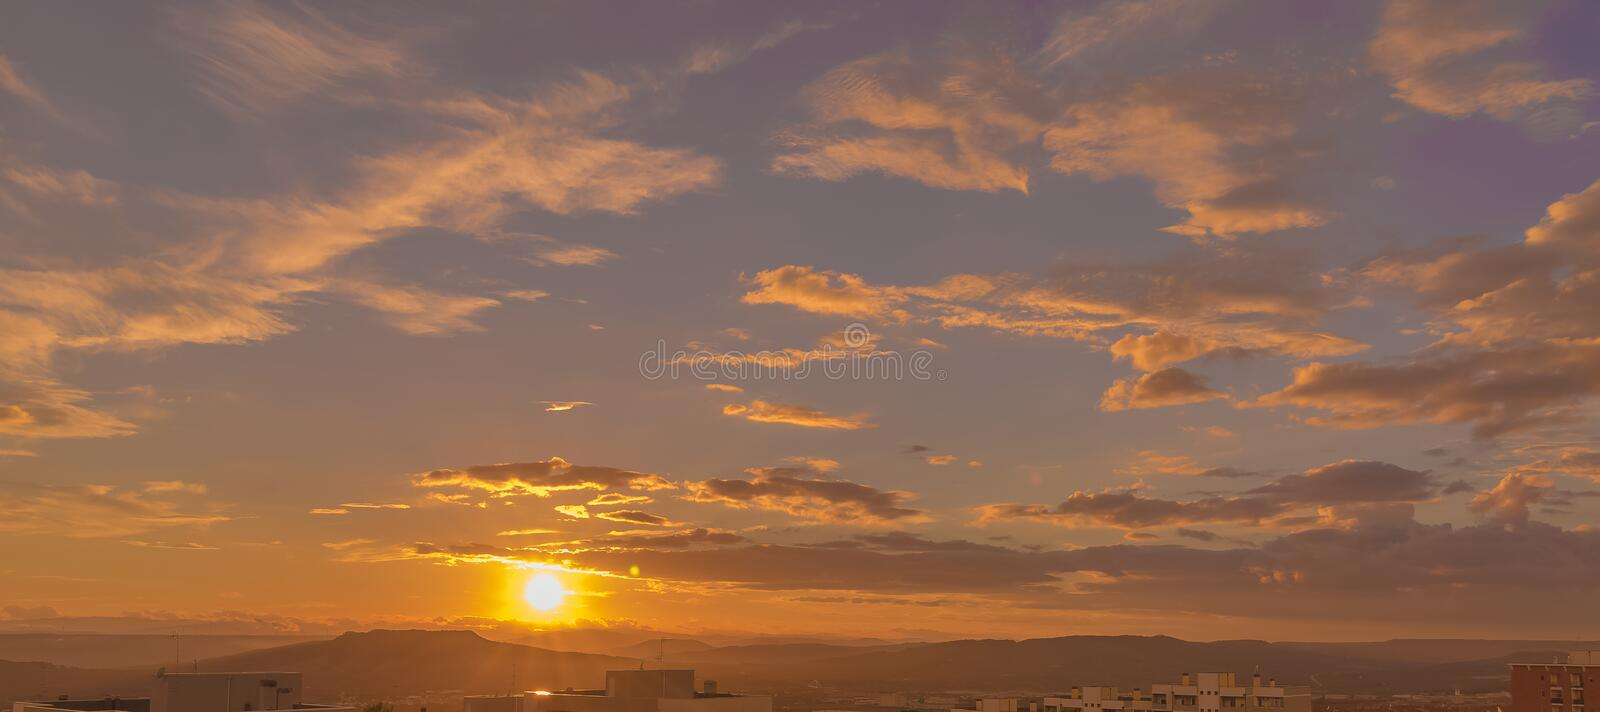 Sunset scene with sun fall behind the clouds and mountains in background, warm colorful sky with soft clouds. Concept of nature stock photos